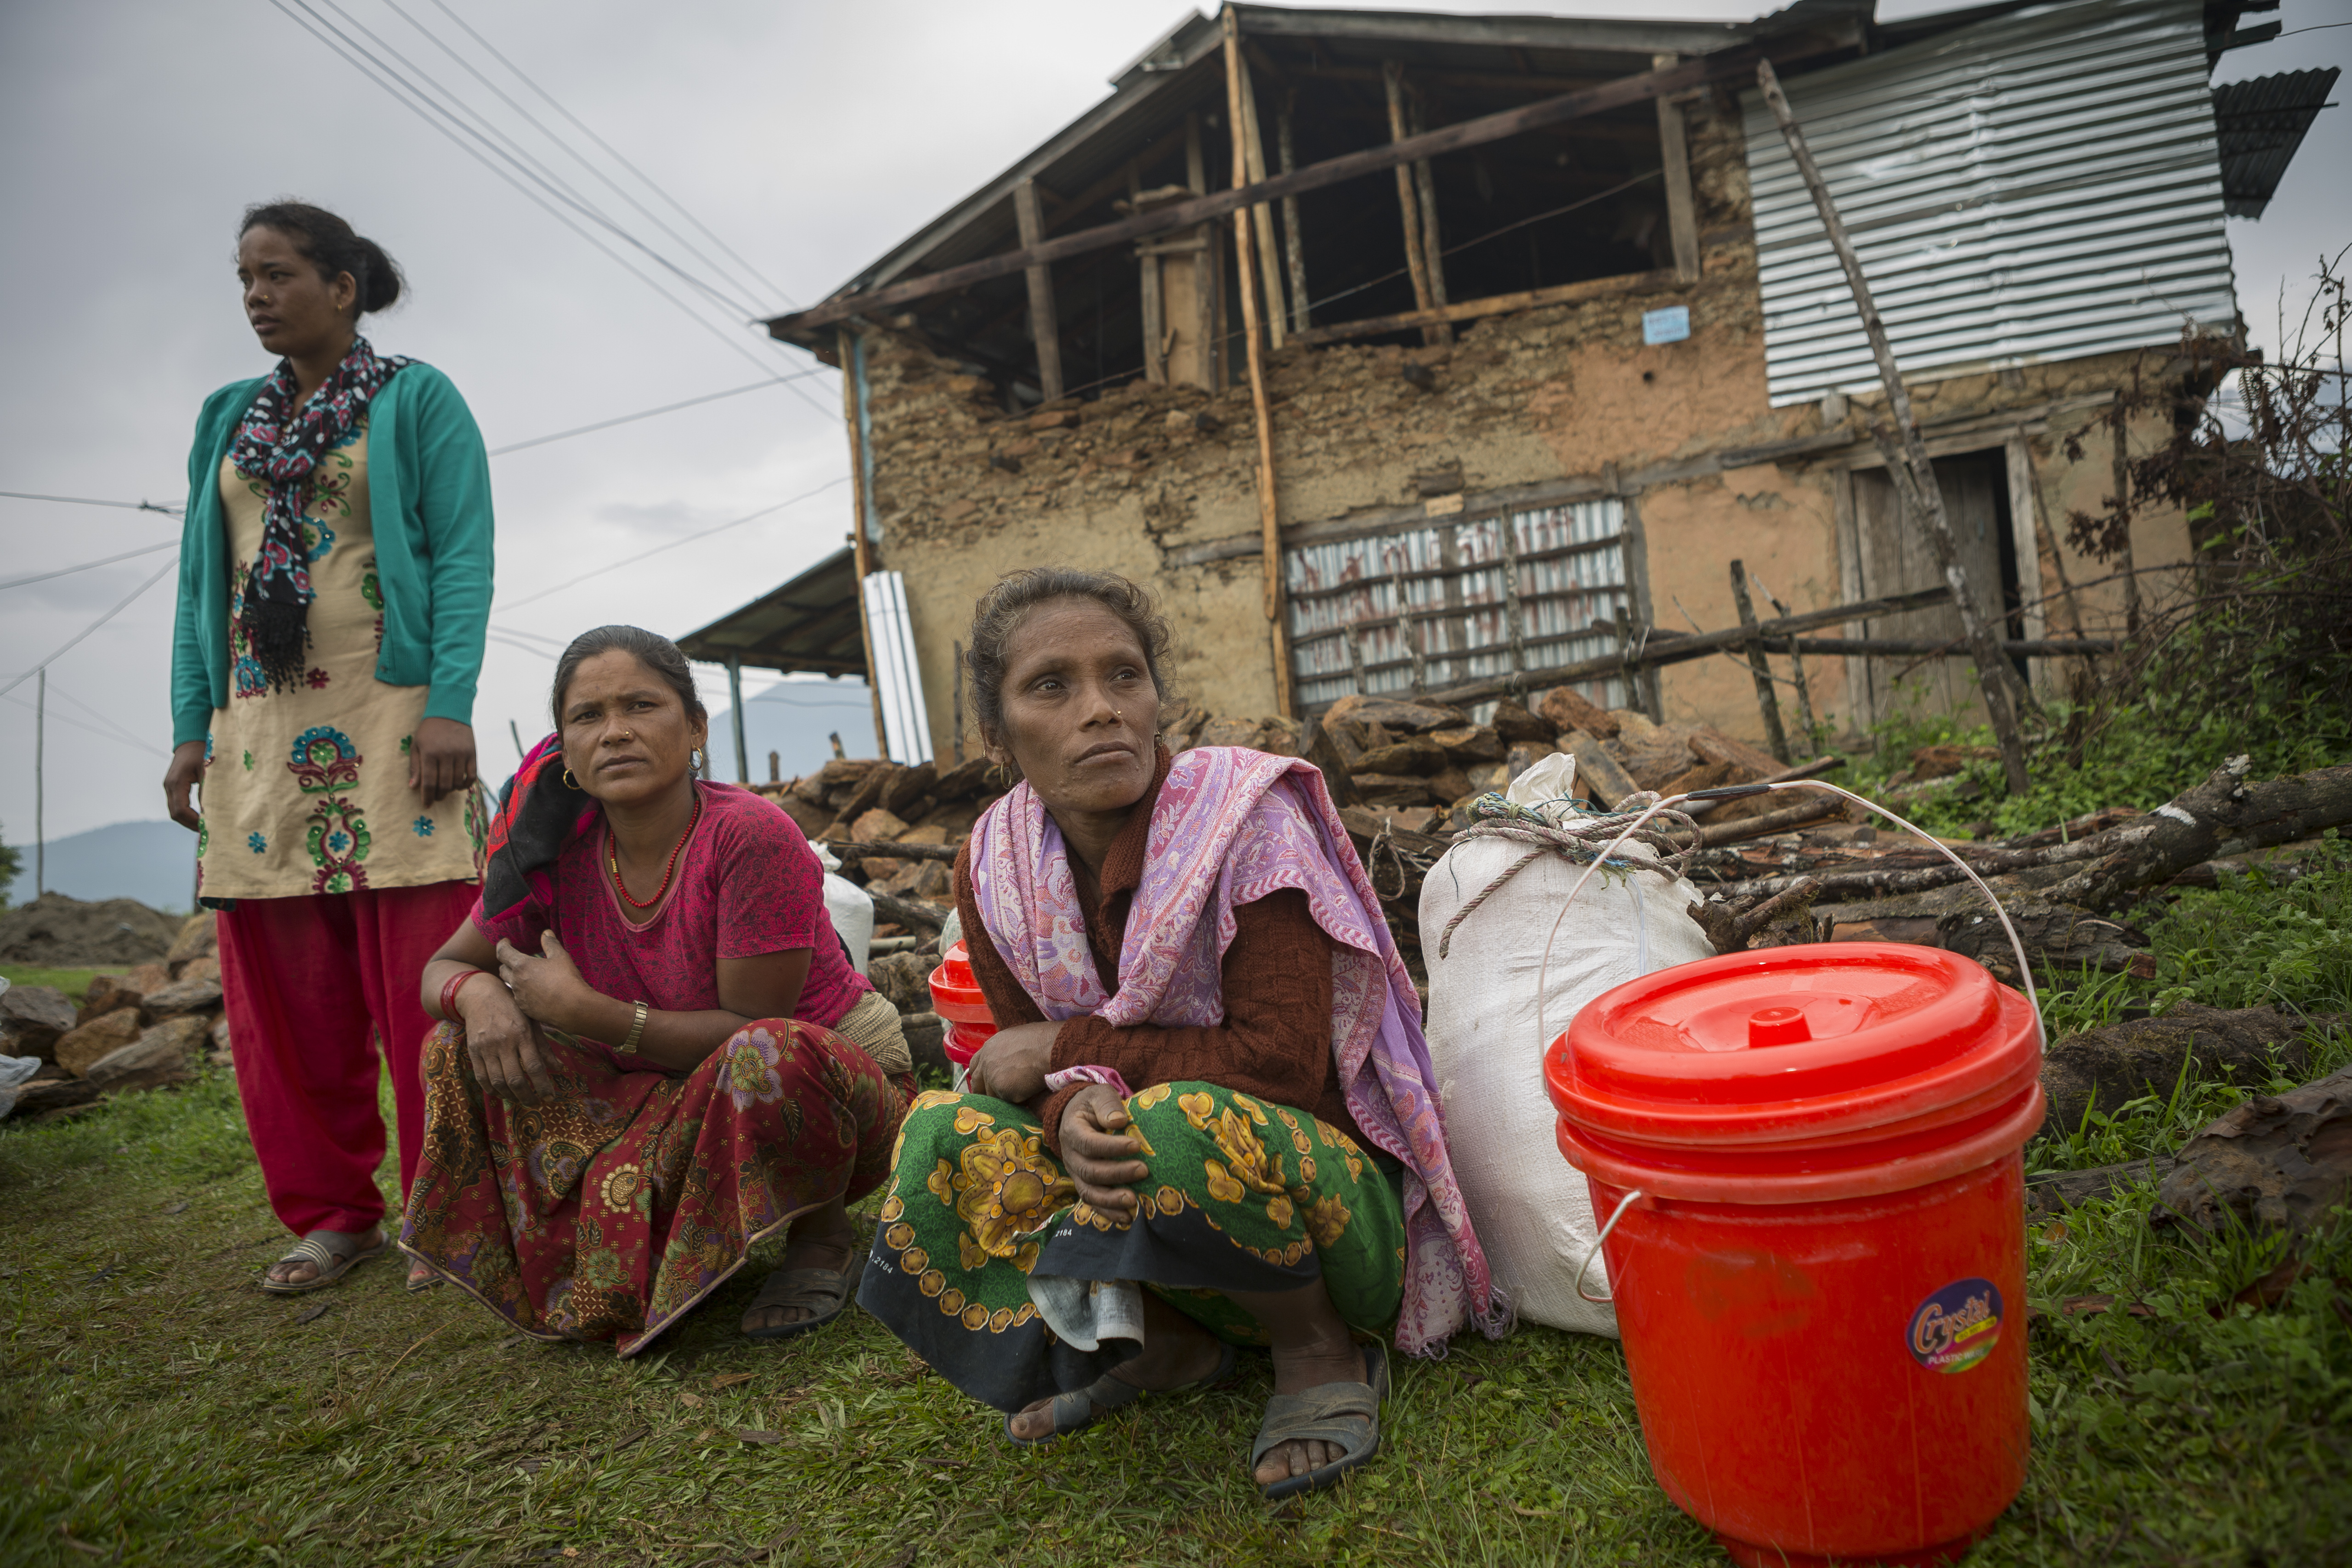 : CRS is helping Nepal earthquake survivors rebuild their homes and livelihoods. Photo by Jake Lyell for CRS